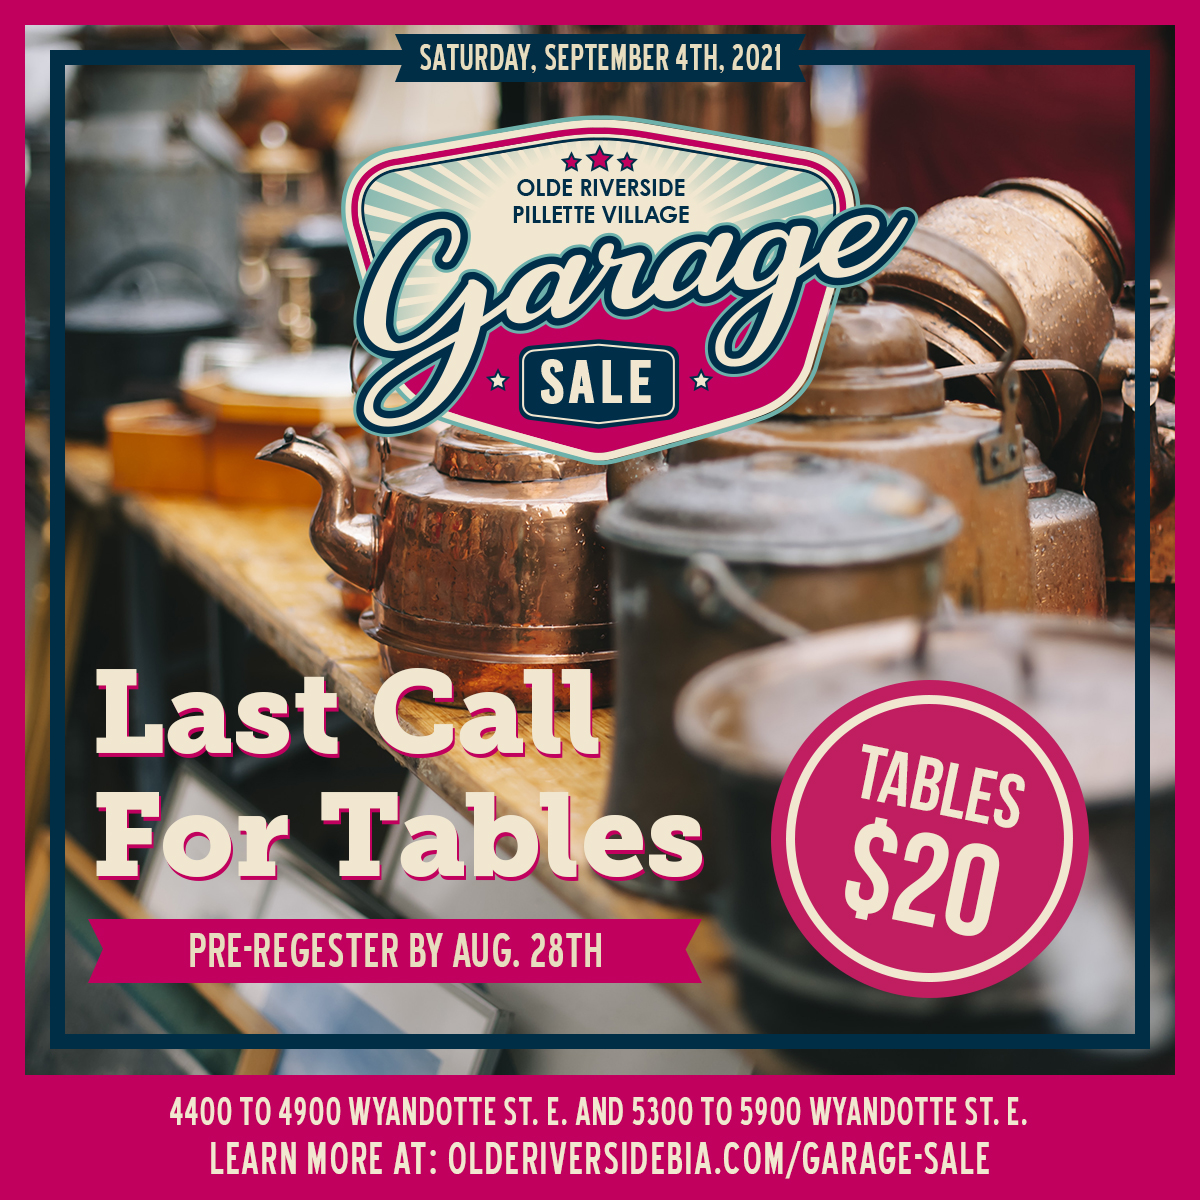 Last Call for Tables!